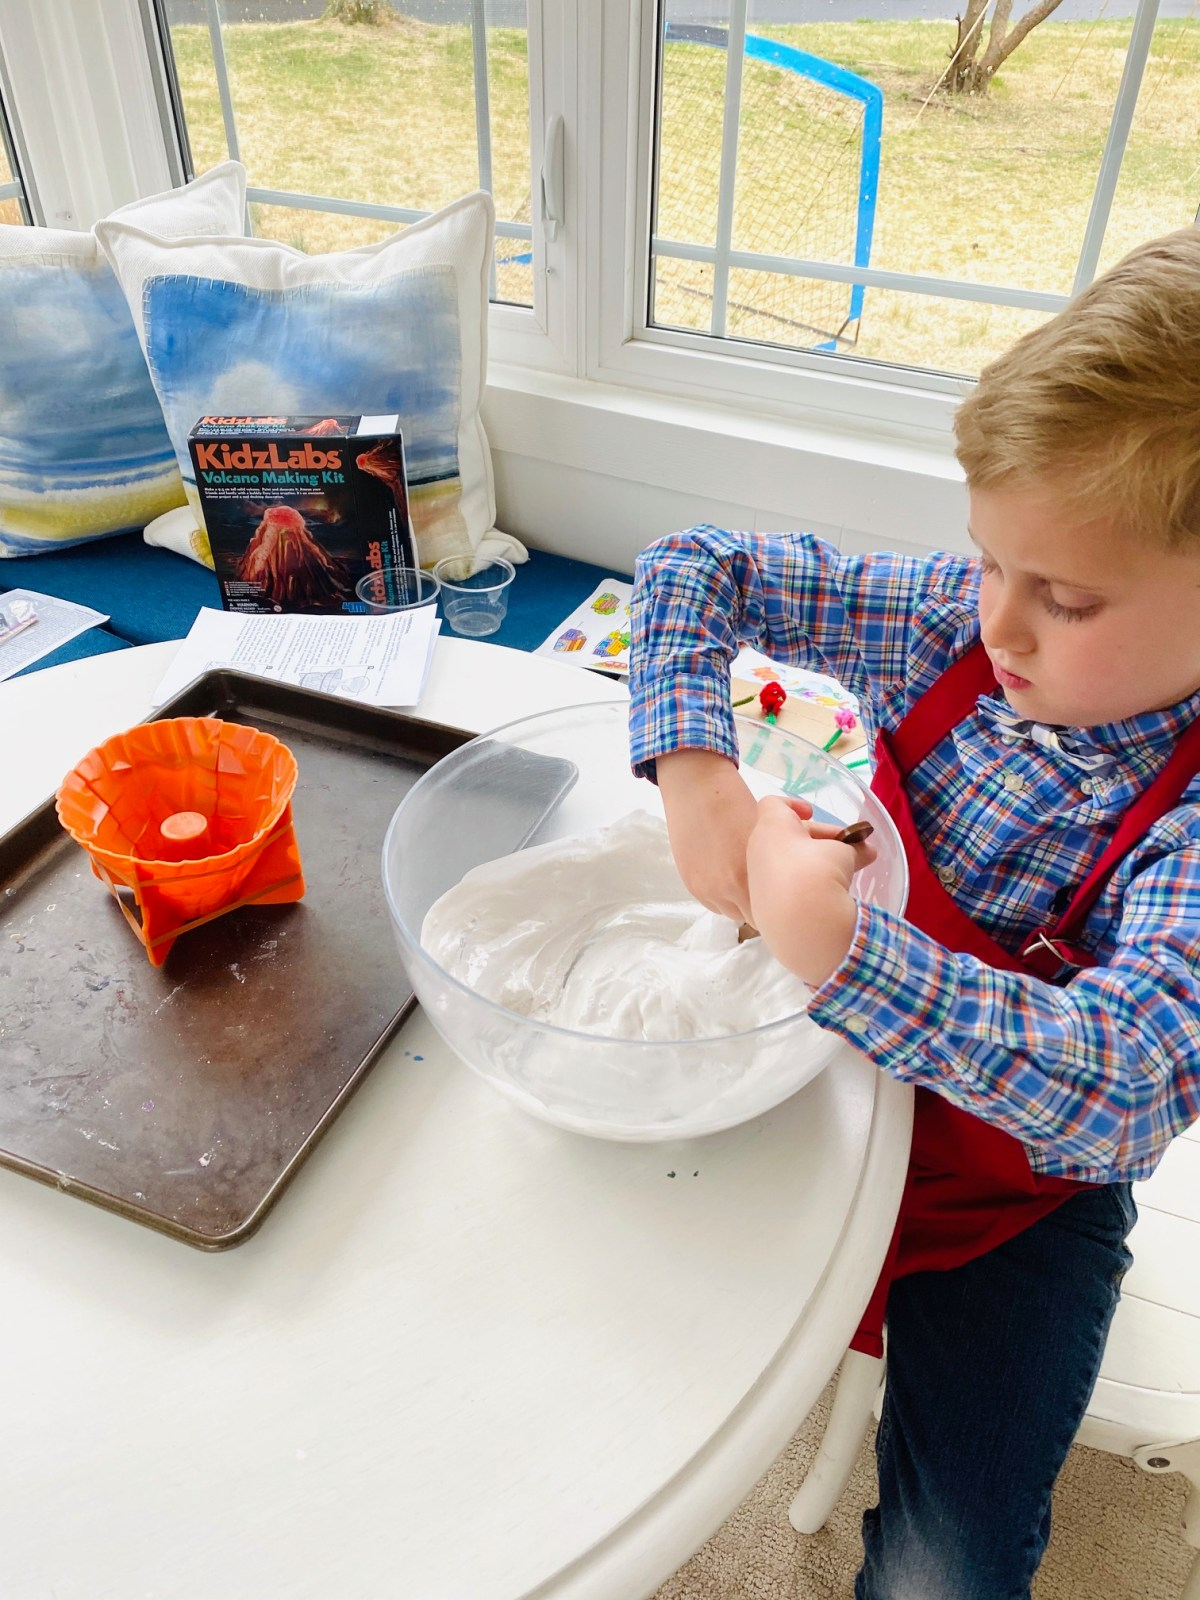 Boy Mixing Plaster in Bowl to Fill Volcano in Kid's Volcano Art Project